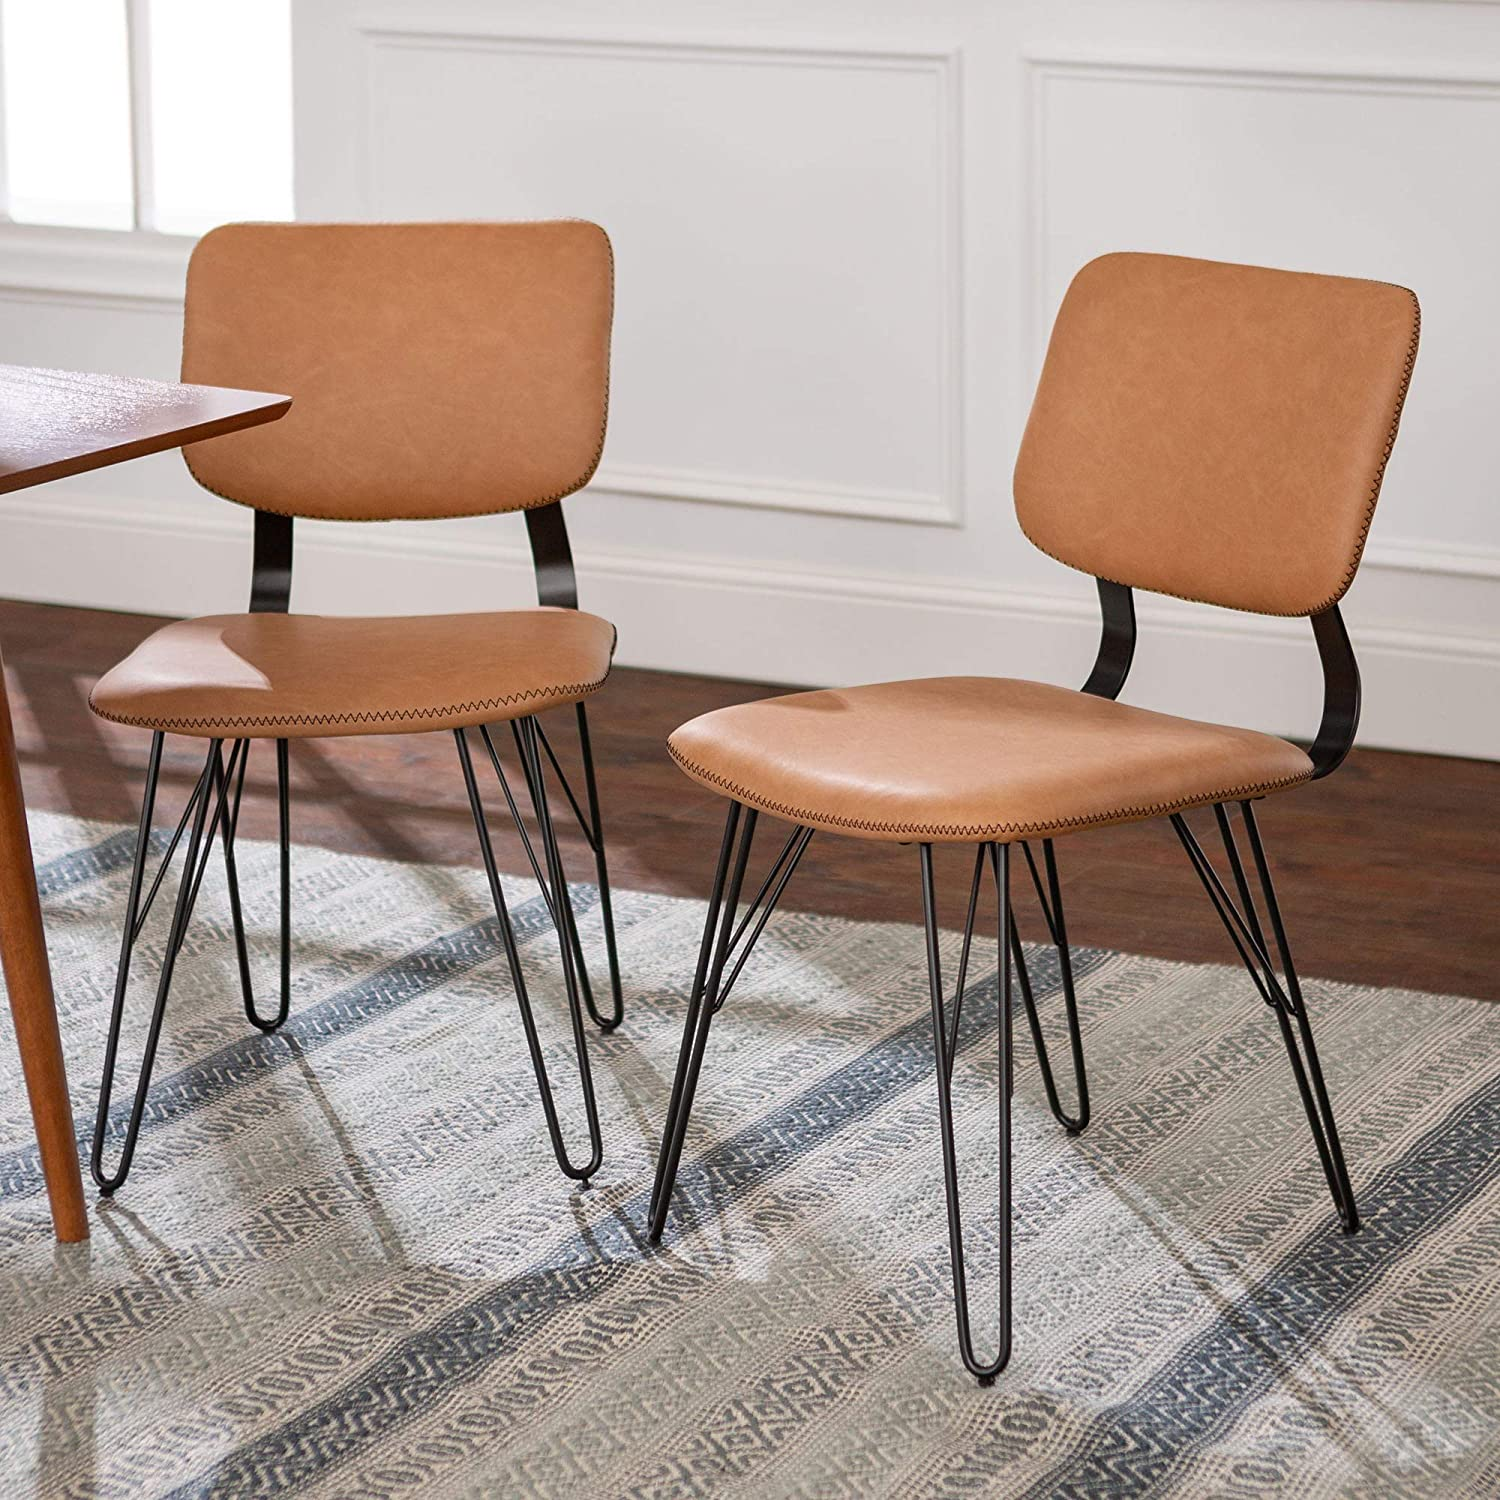 WE Furniture Mid Century Modern Accent Tan Dining Chair Set of 2 for Kitchen Caf Upholstered Cushion Seat